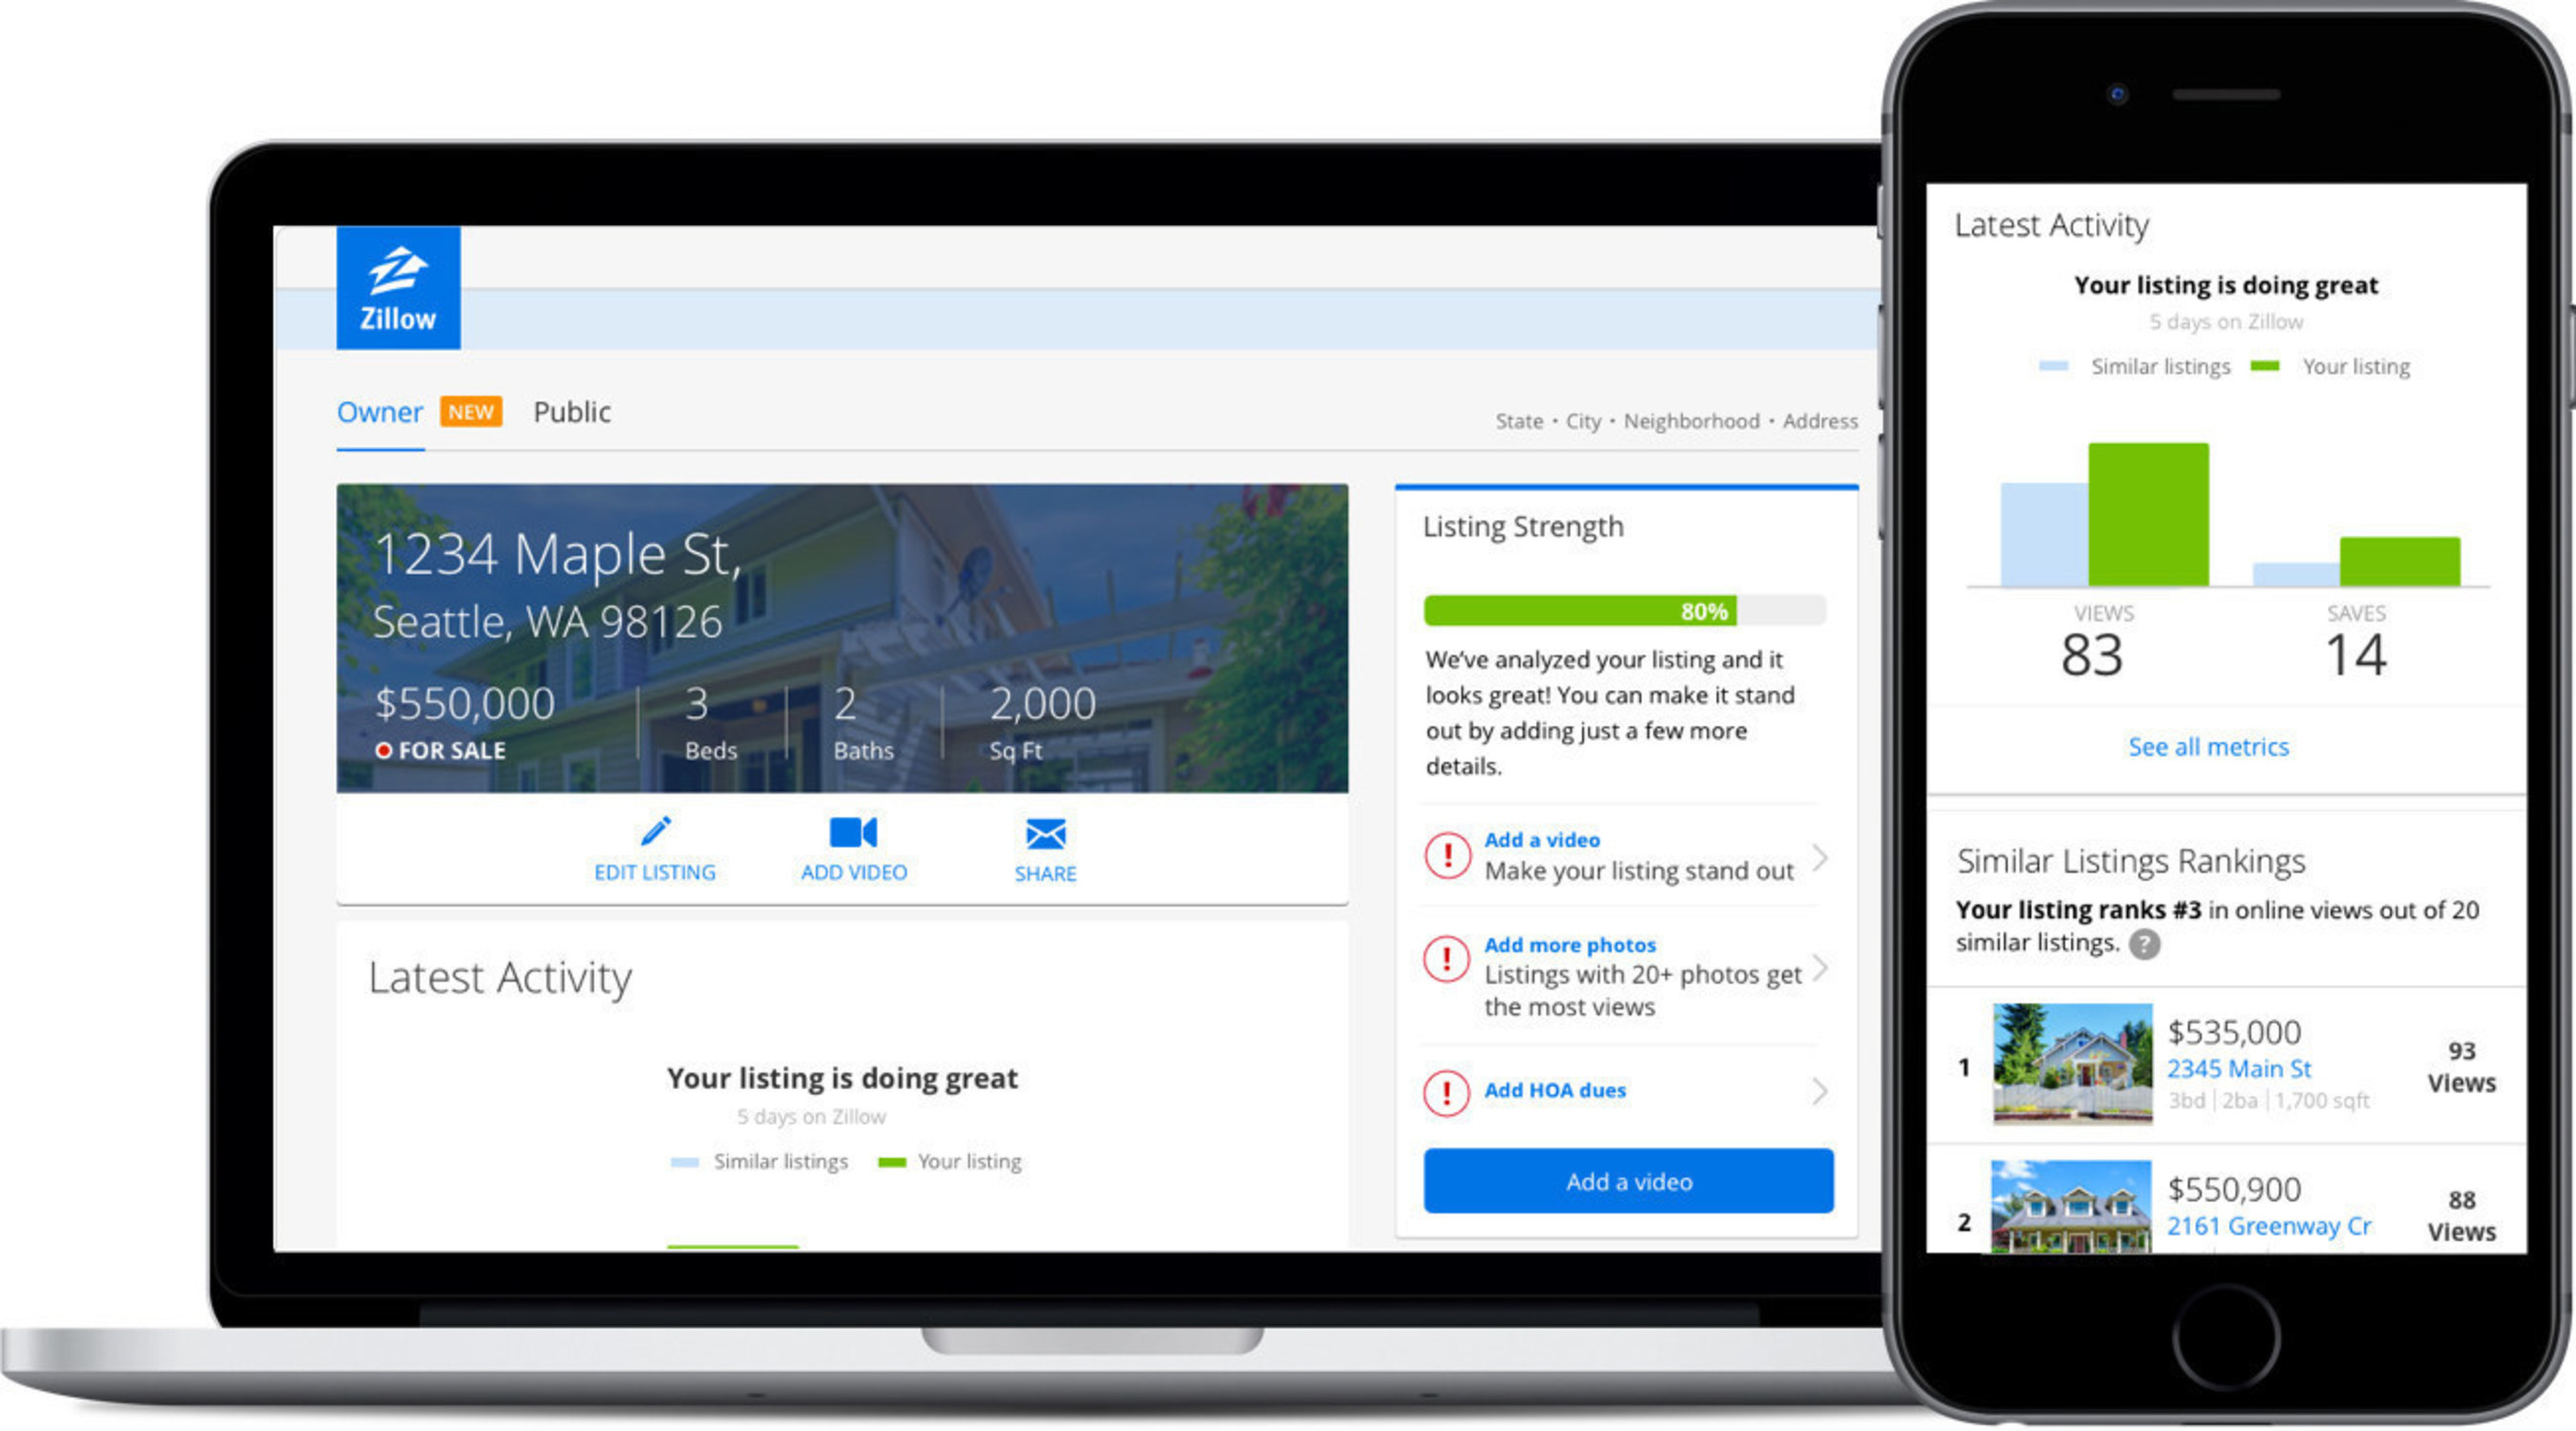 Home Sellers Can Now Access Real-Time Information on Their Listing's Performance Through Zillow's New Owner Dashboard